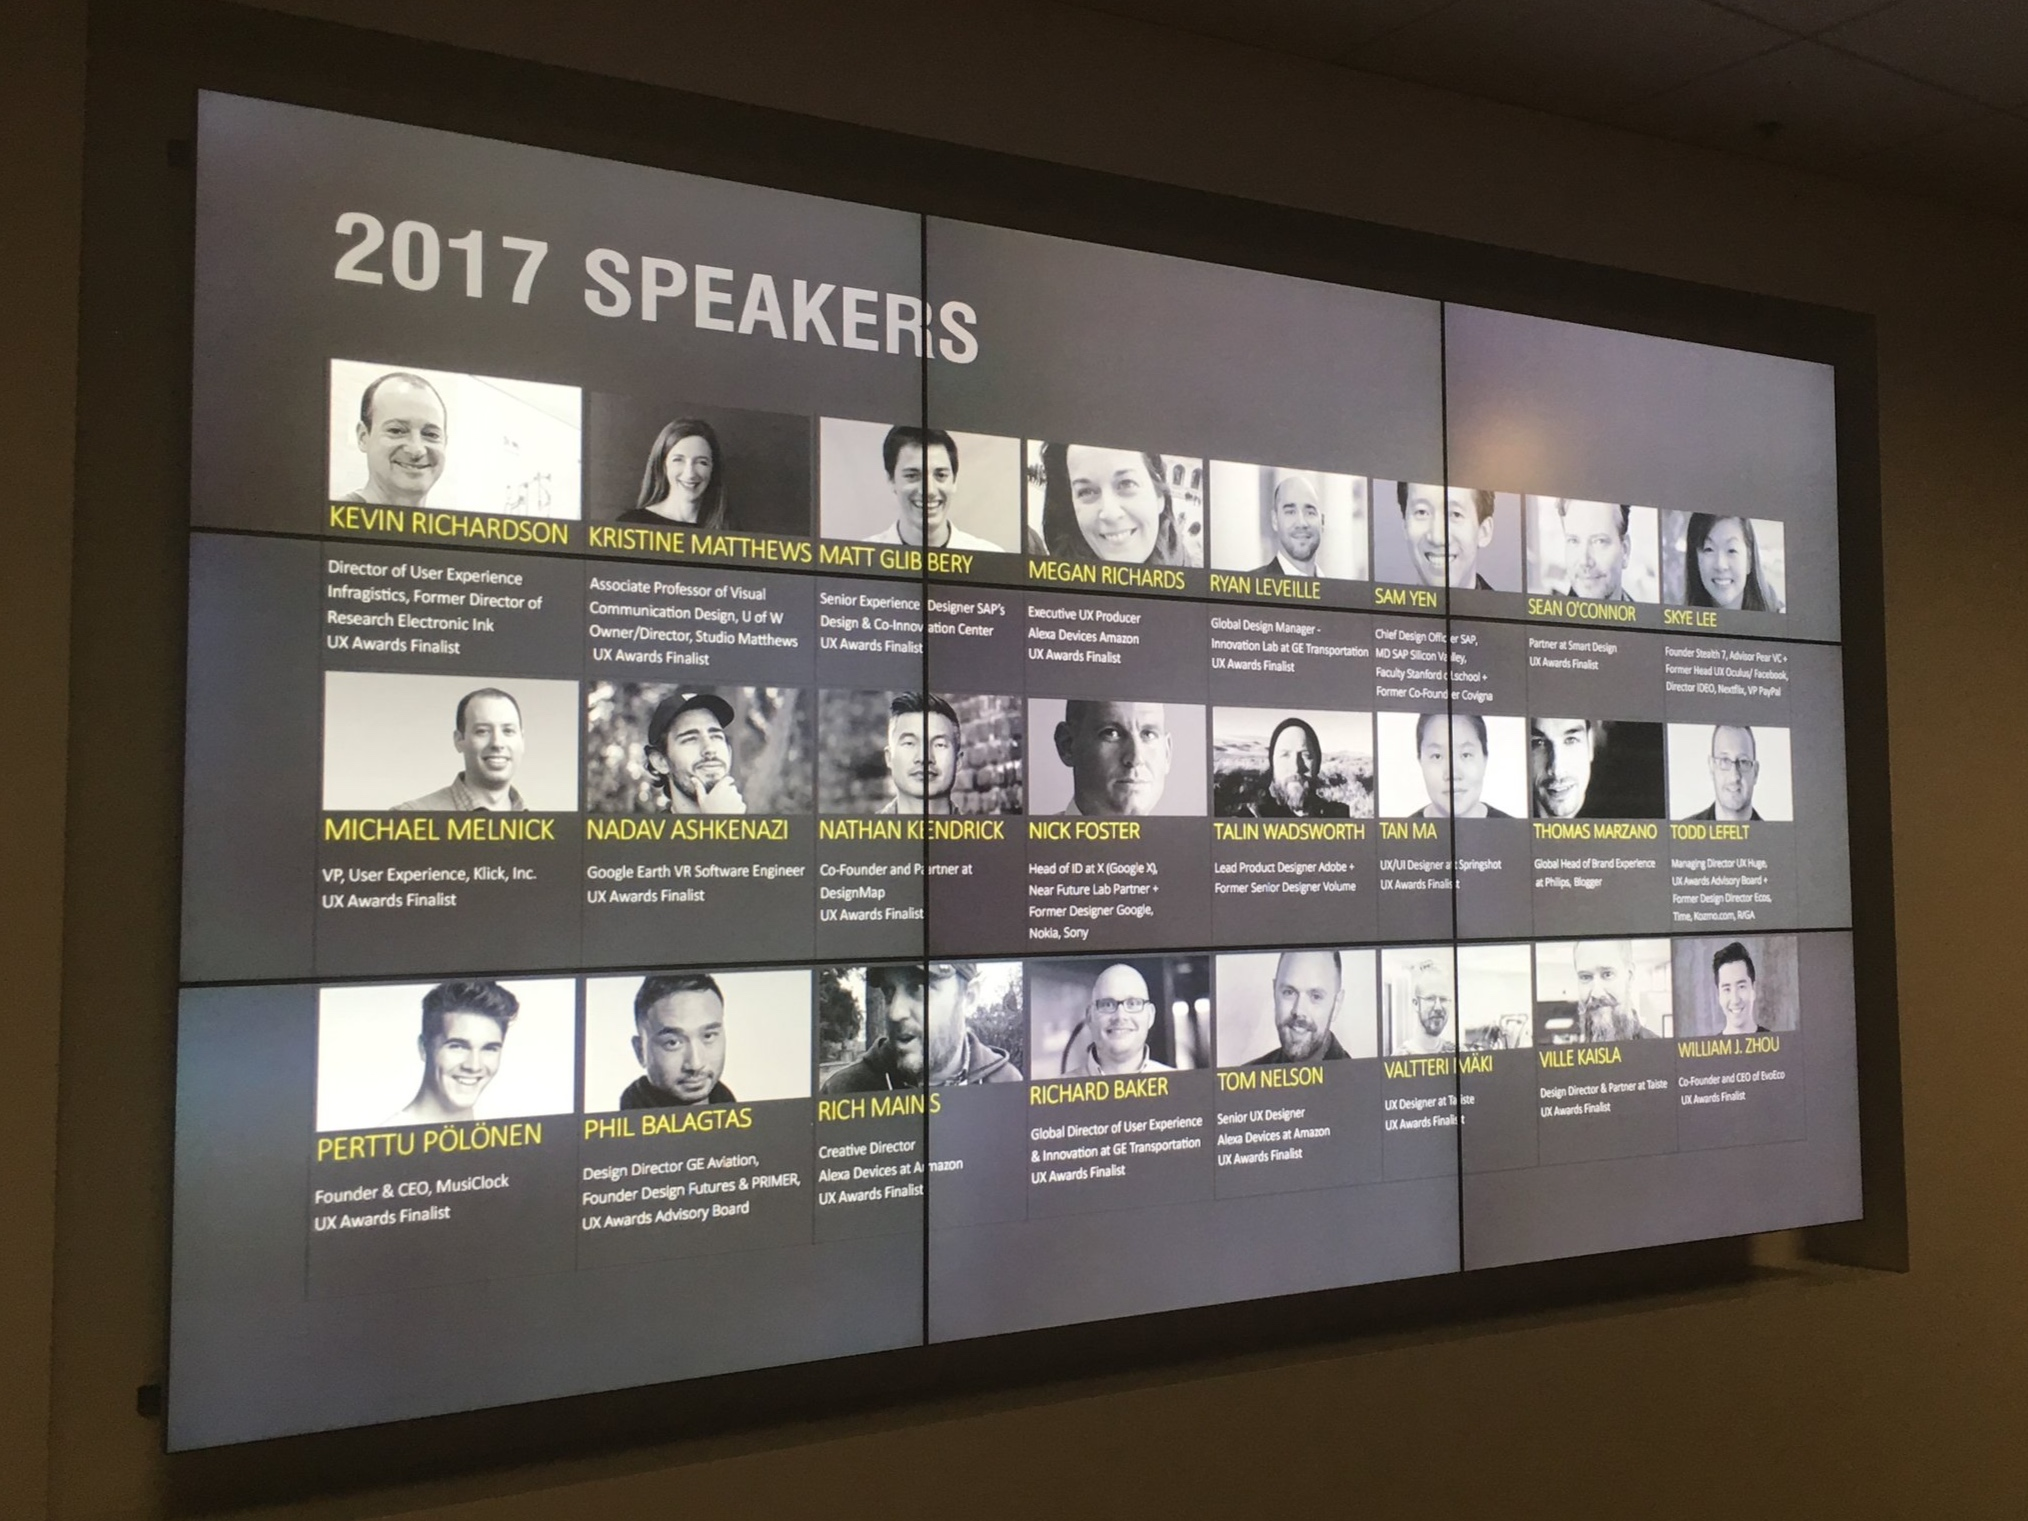 2017 conference lineup